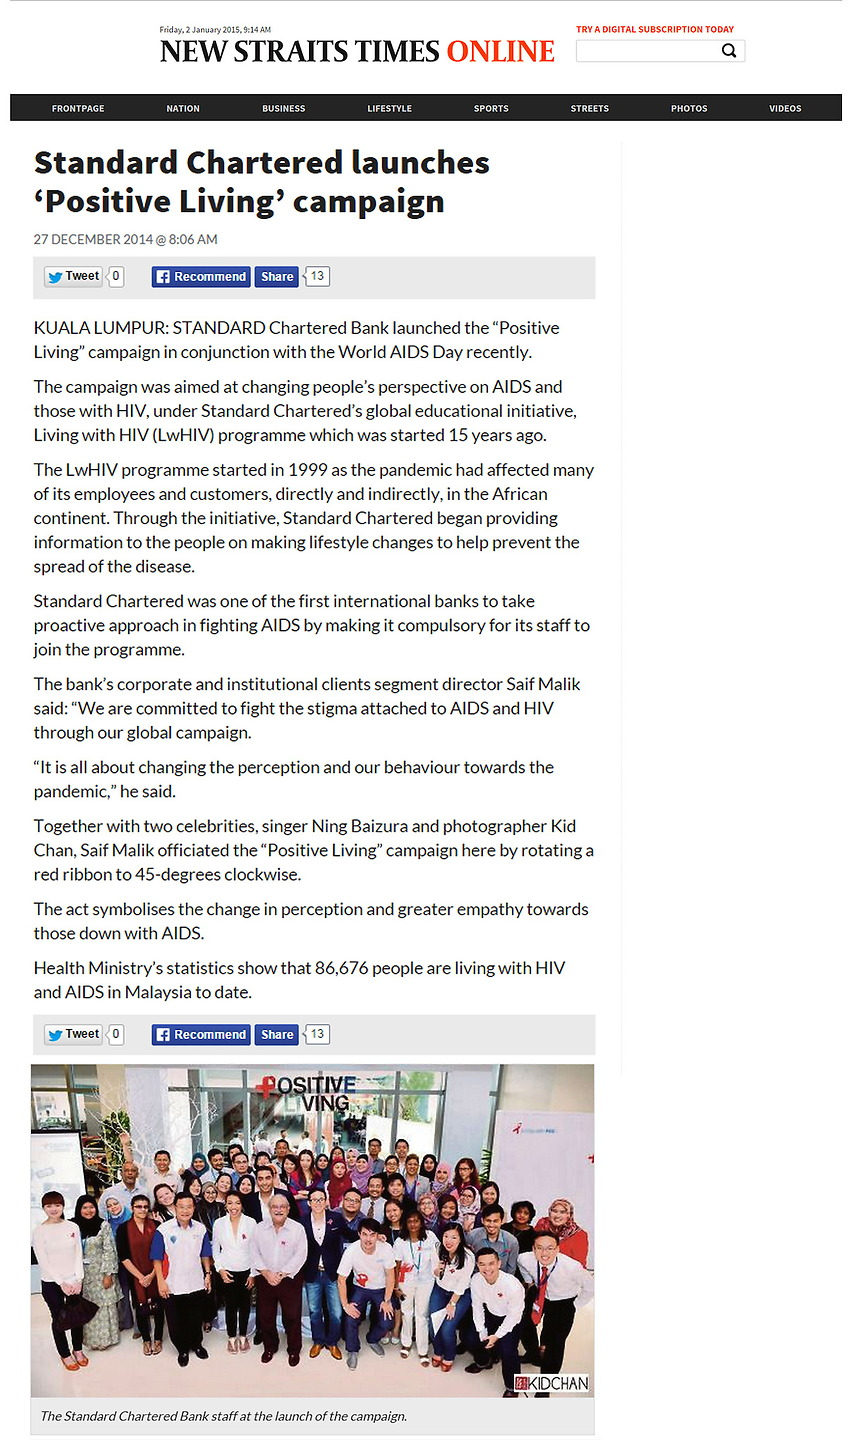 New Straits Times: Kid Chan & Standard Chartered